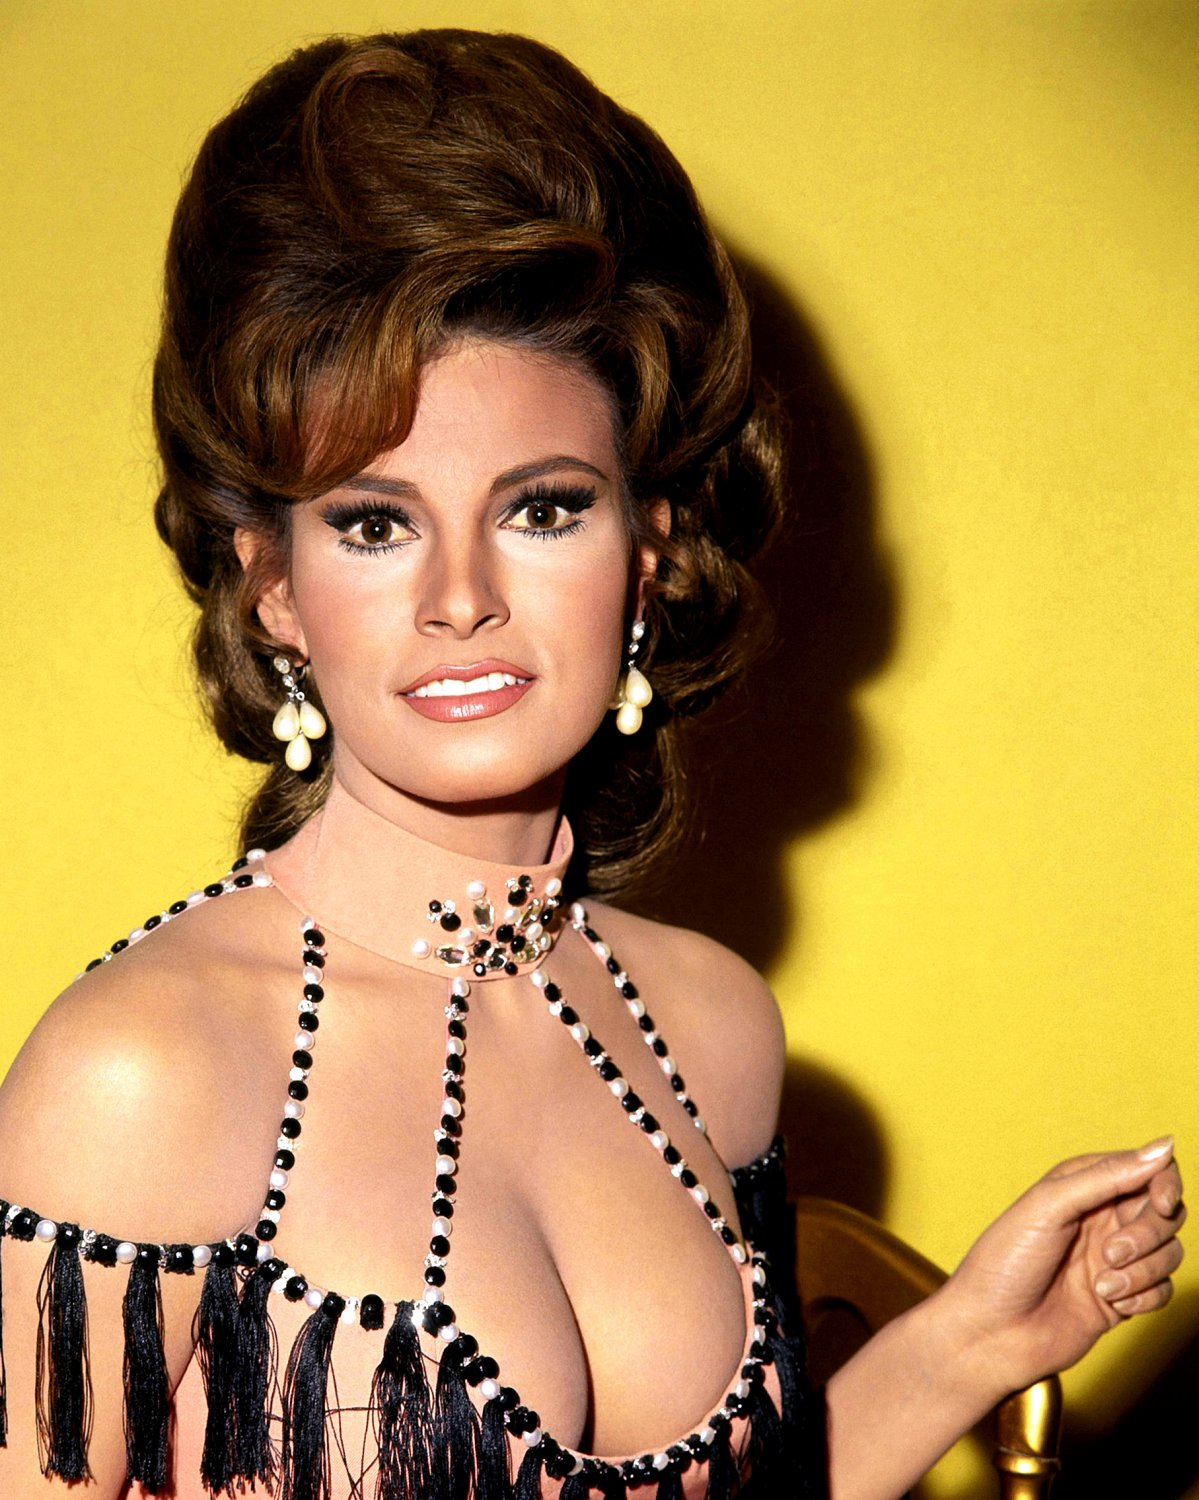 Raquel welch photos 2008 (Raquel Welch) - allcinema